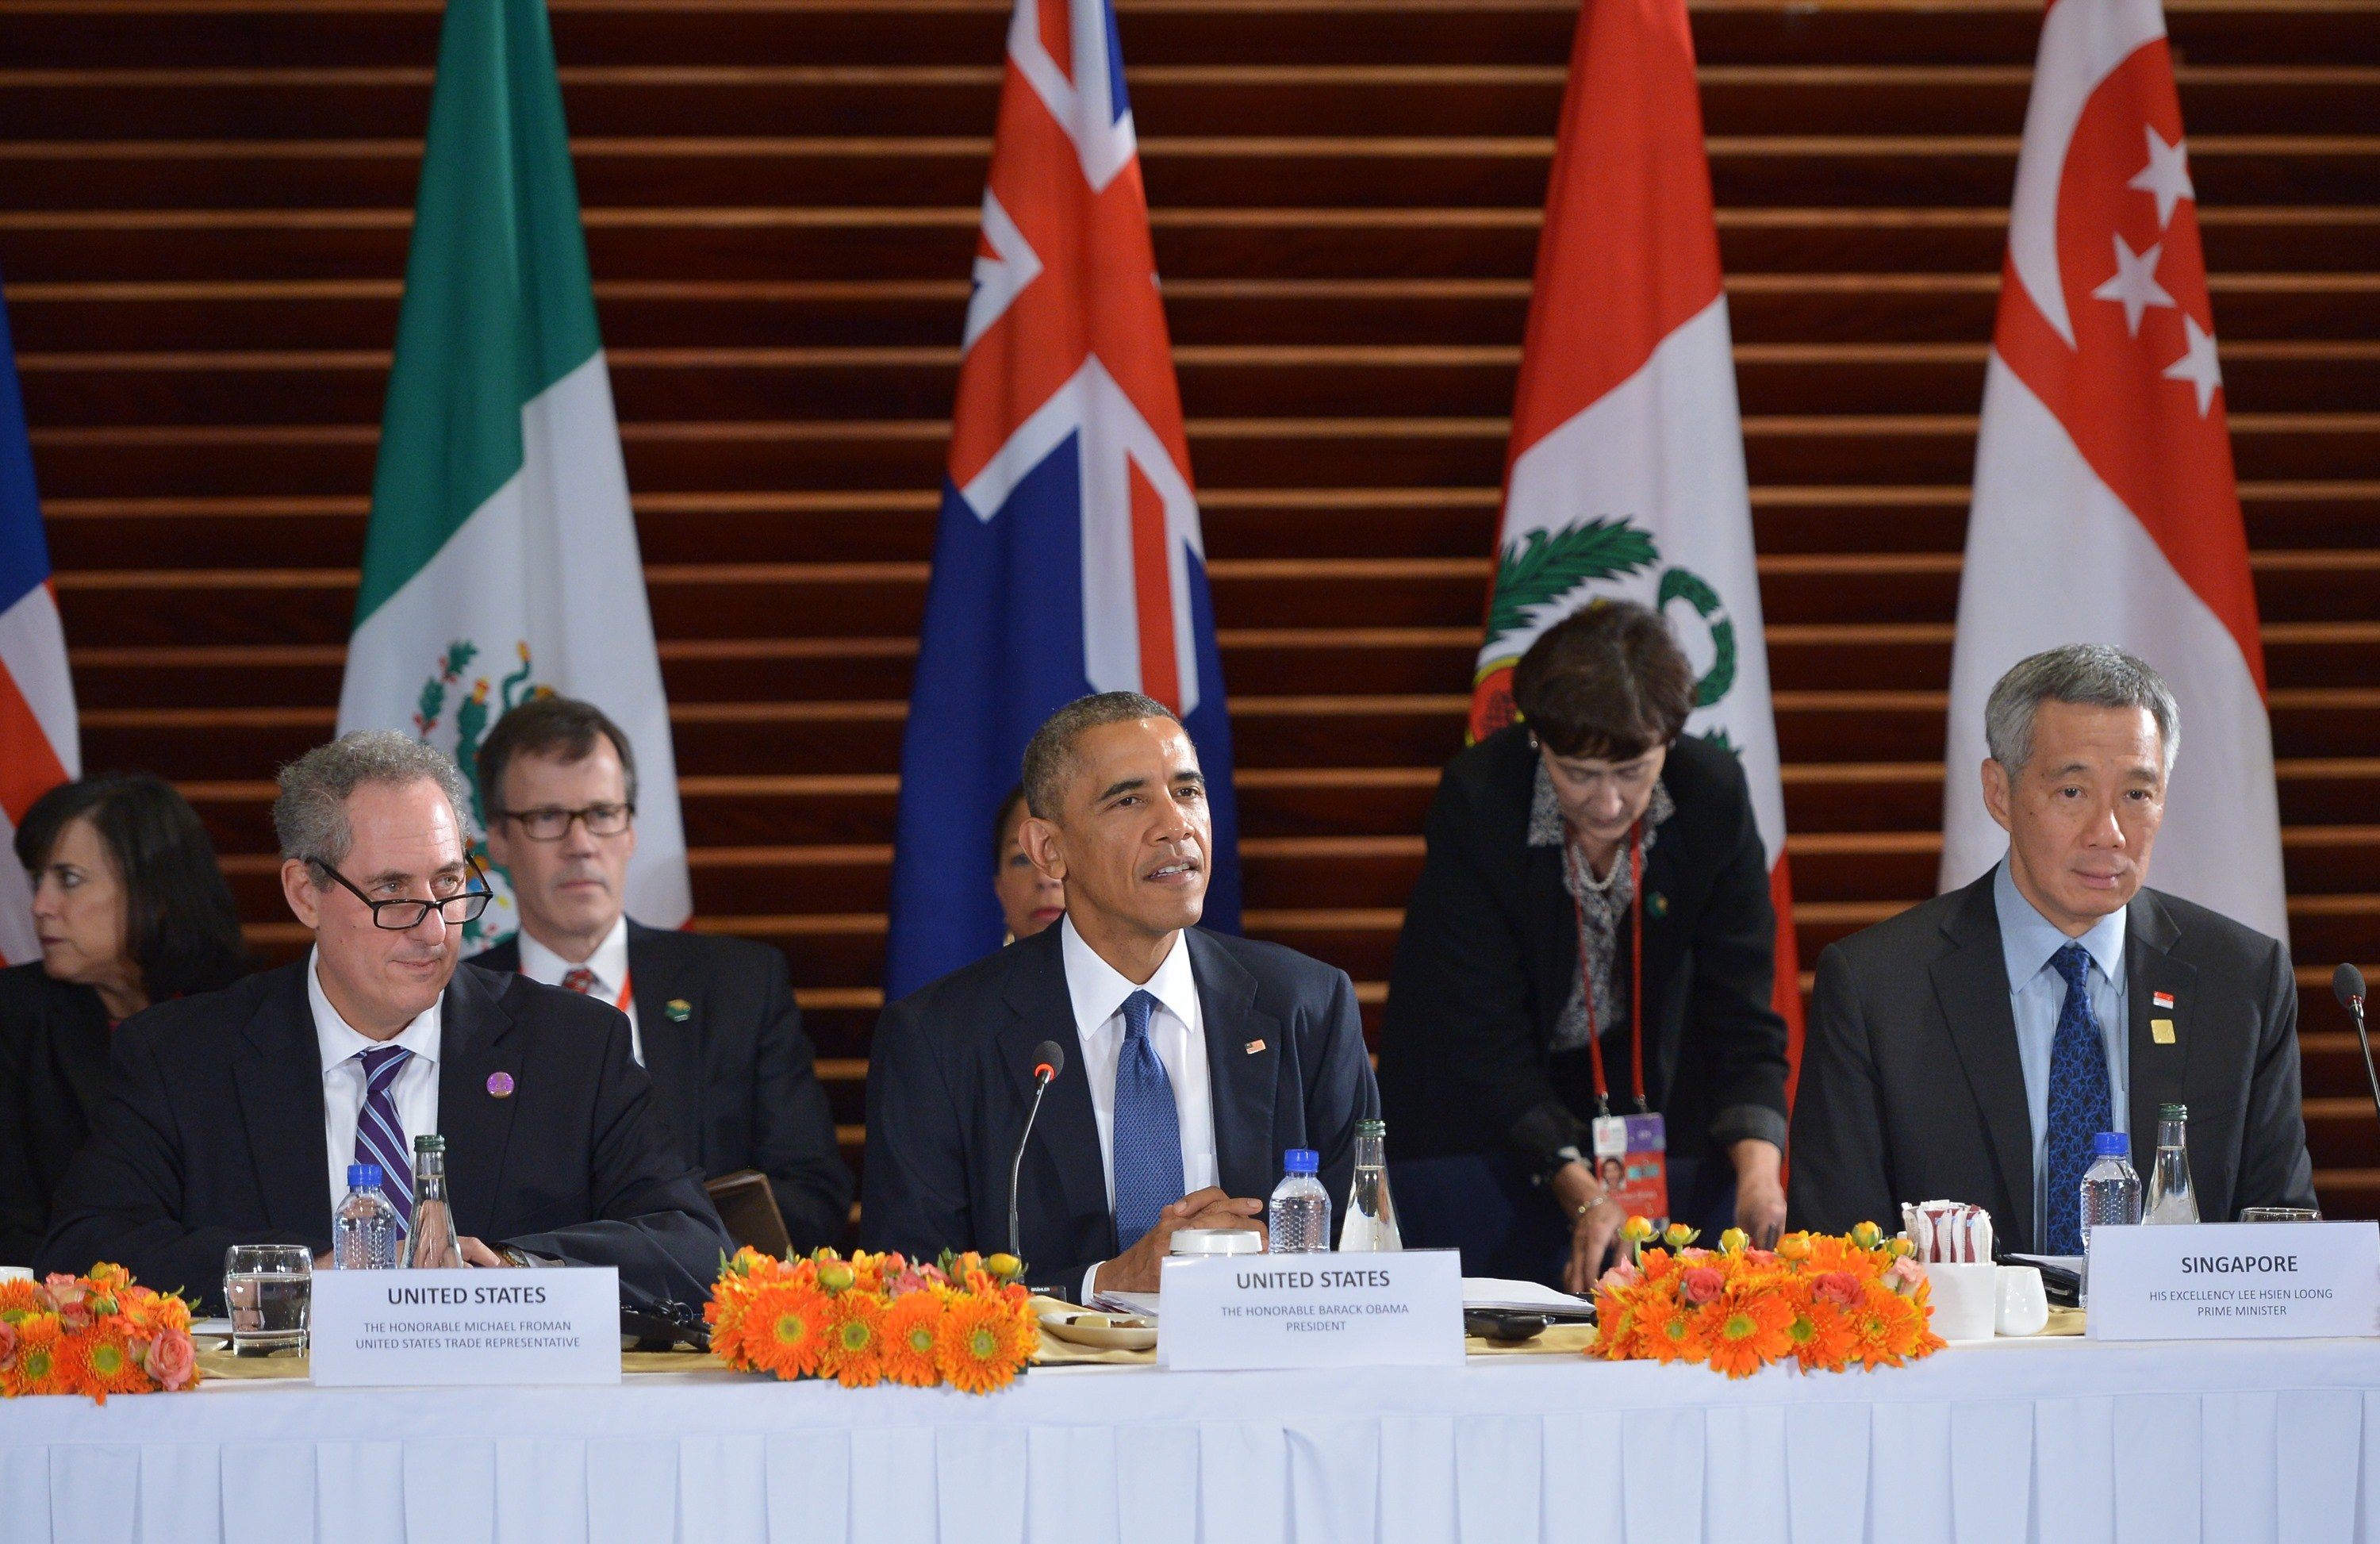 US President Barack Obama speaks during a meeting with leaders from the Trans-Pacific Partnership at the US Embassy in Beijing on November 10, 2014.(MANDEL NGAN/AFP/Getty Images)